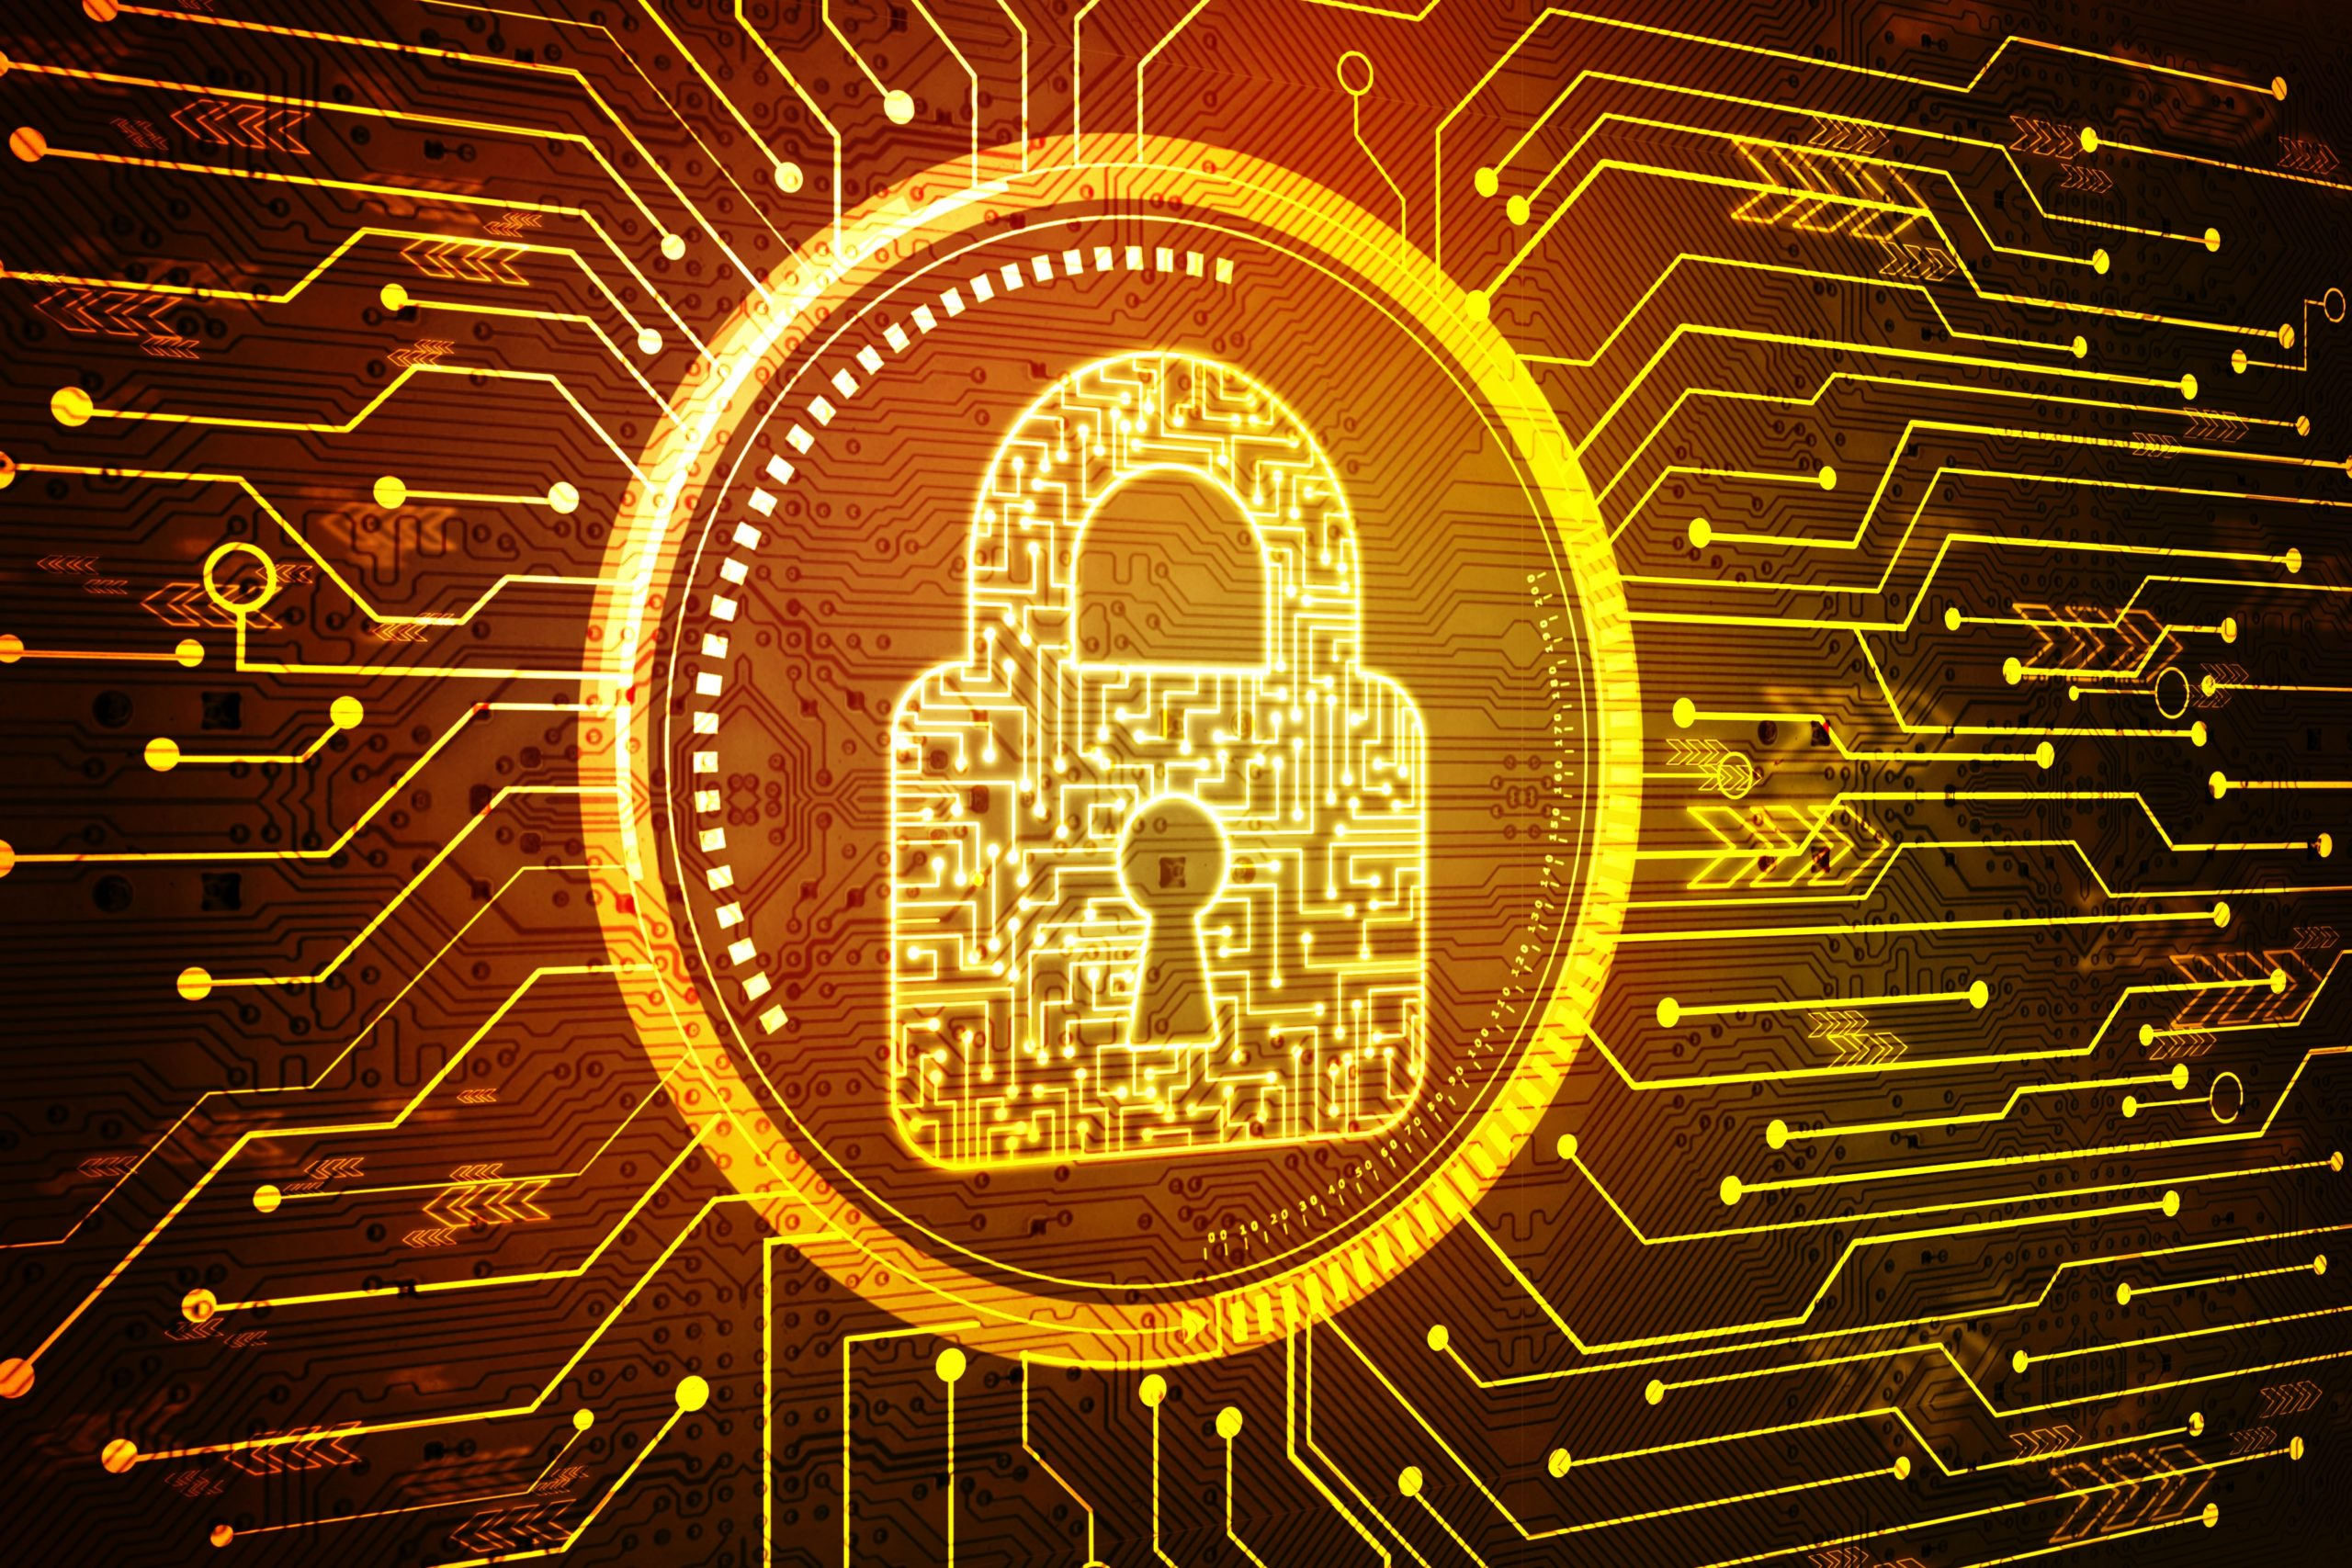 Digital Transformation And Cybersecurity During Covid-19